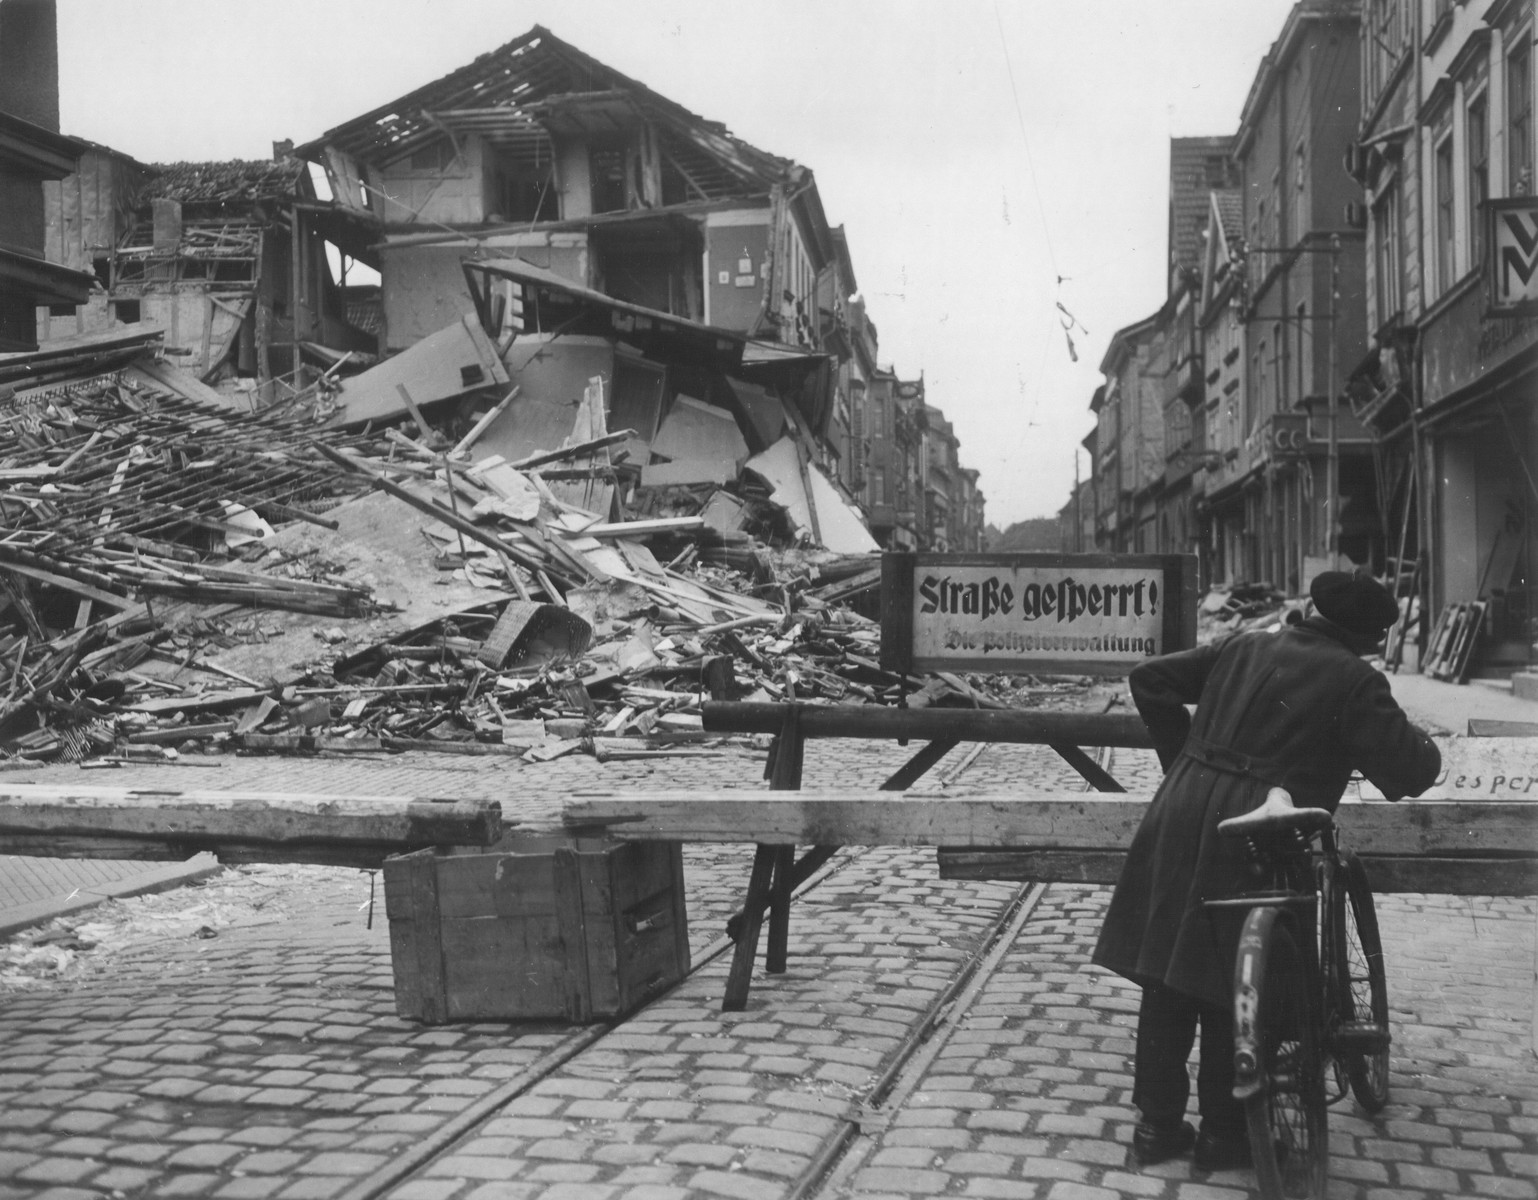 """A boy with a bicycle stands at a barrier closing off a heavily damaged street in a German city.  The German sign on the barrier reads, """"Street closed/ The police authority."""""""